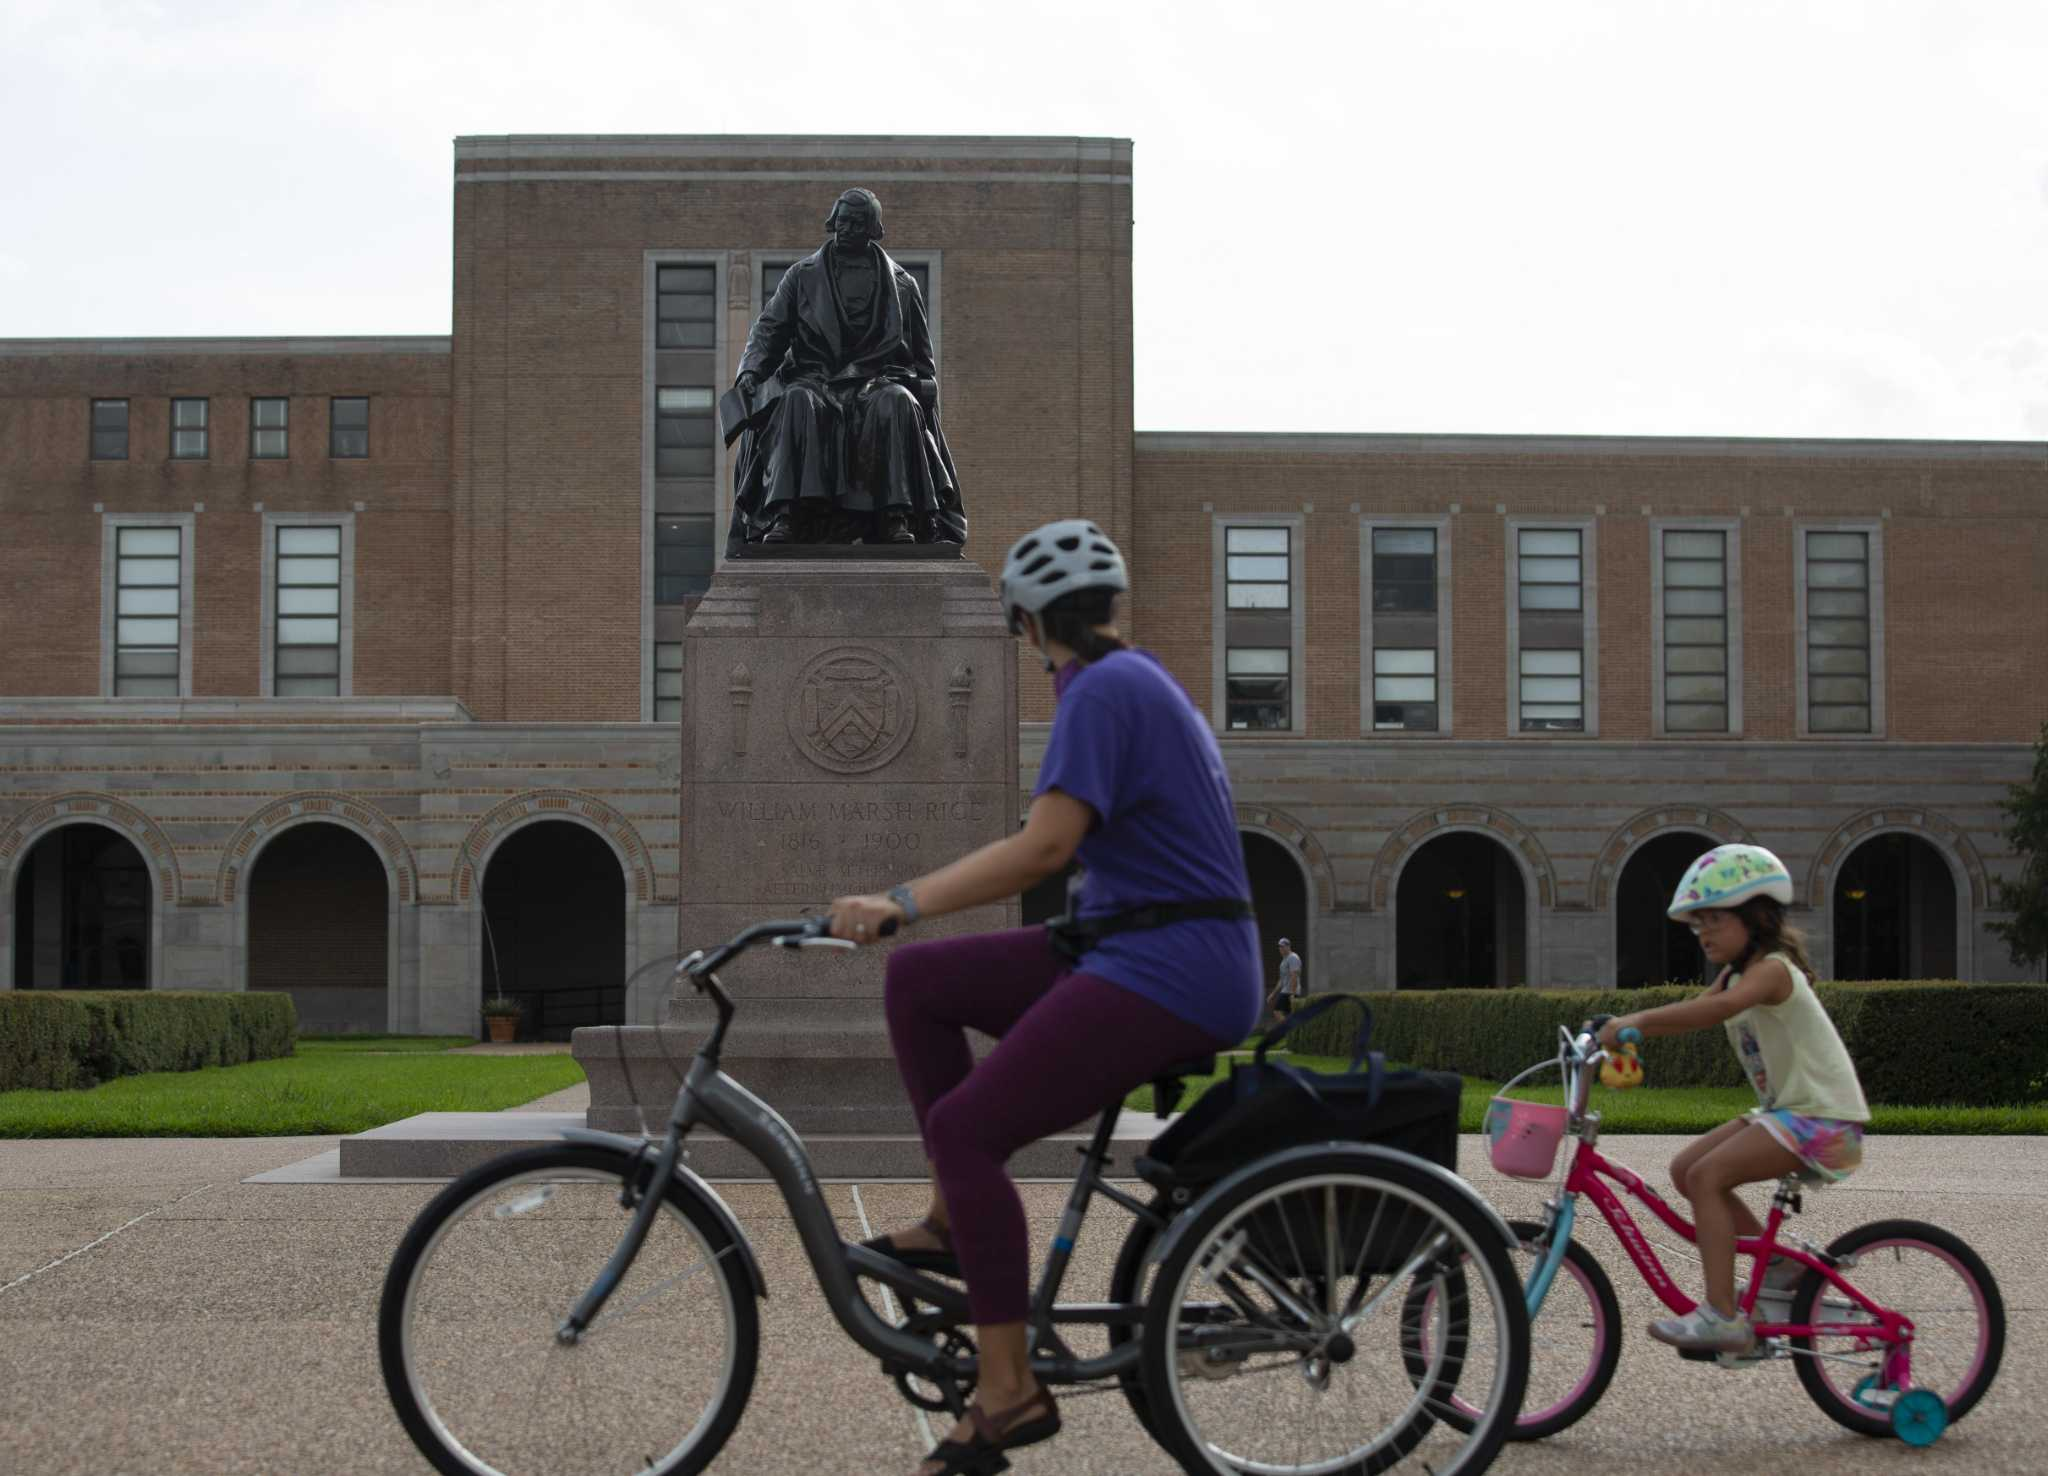 Rice University takes top ranking in U.S. News & World Report '2021 Best Colleges' list